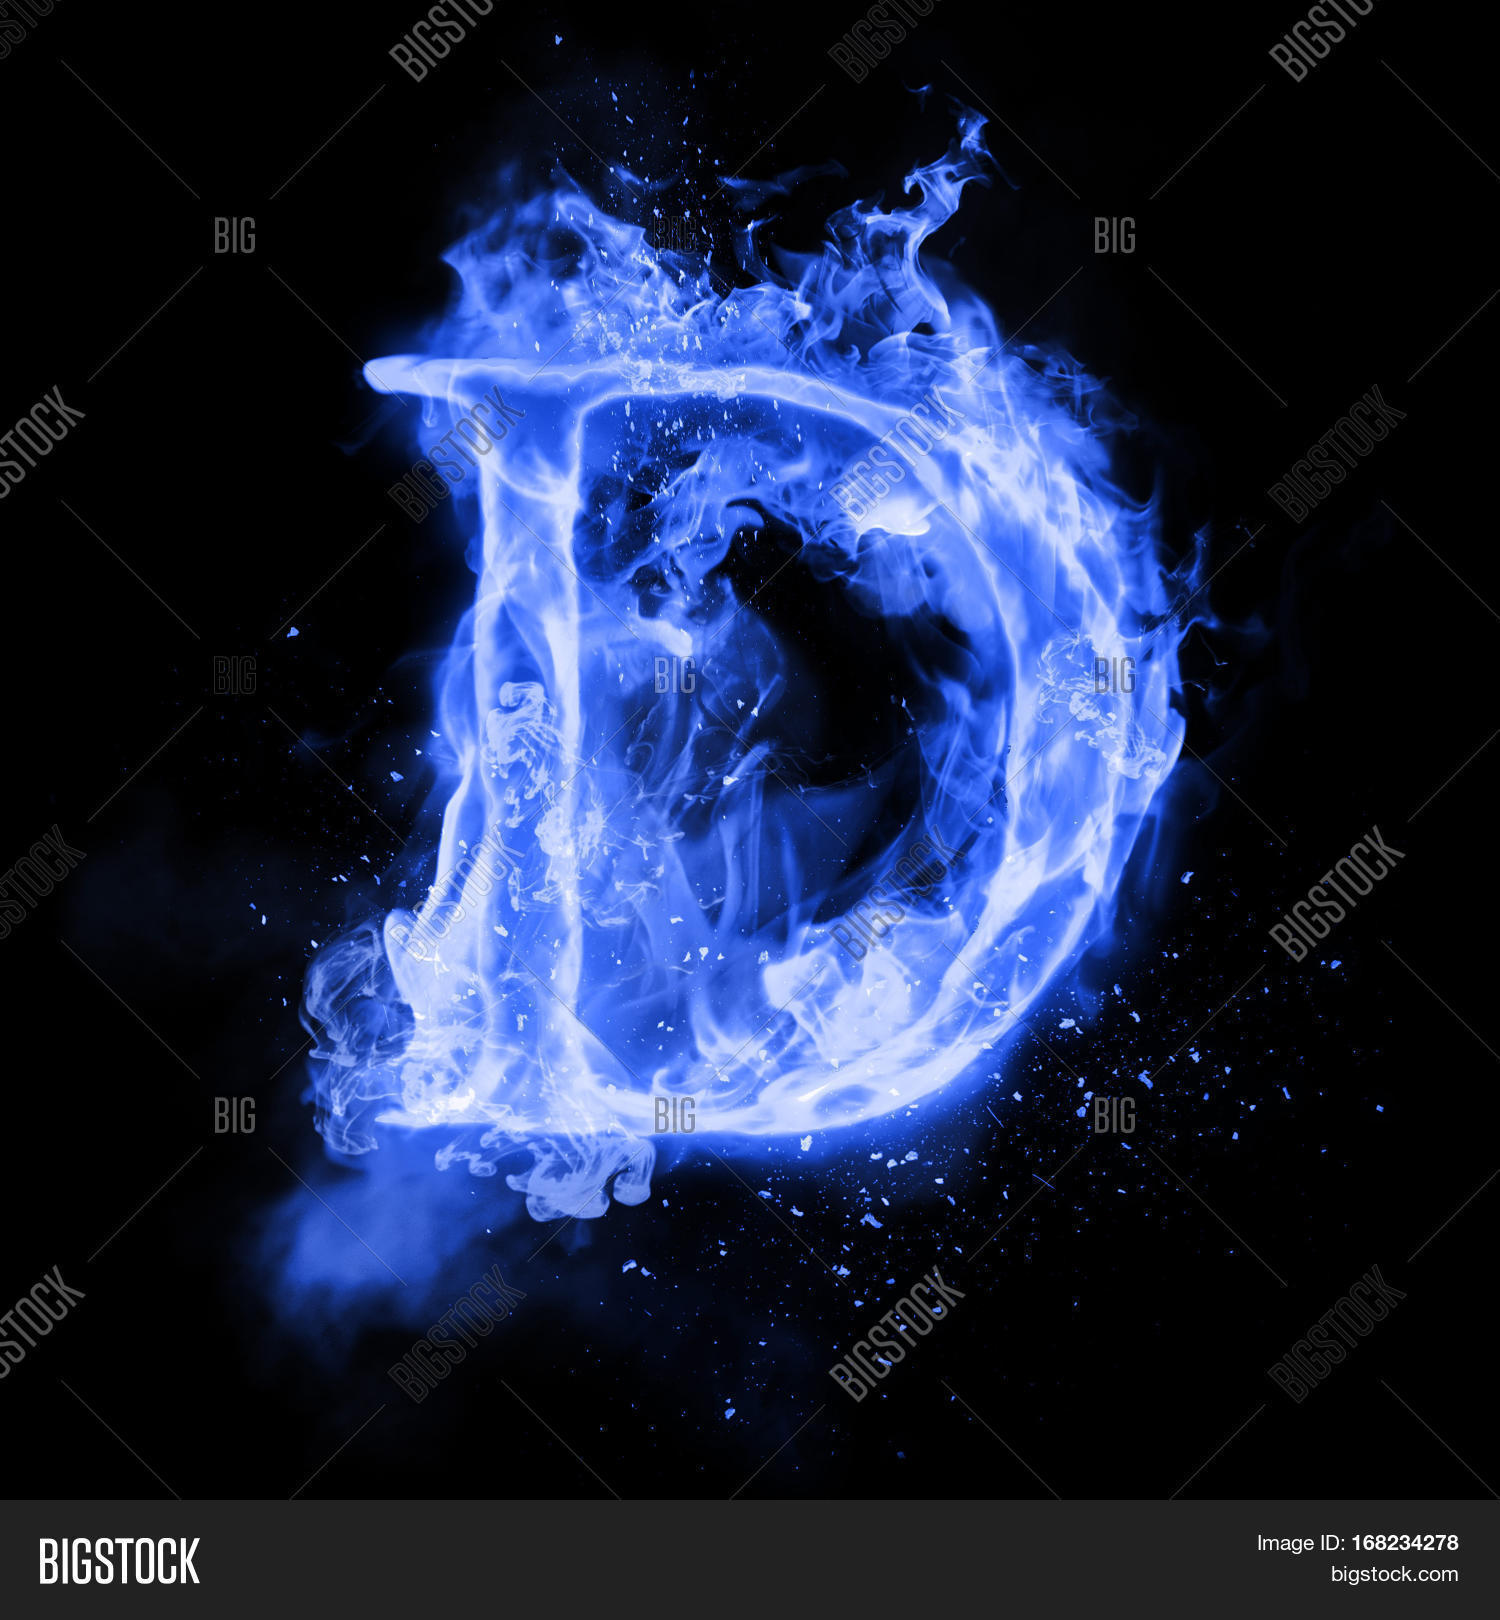 Fire Letter D Burning Image Photo Free Trial Bigstock